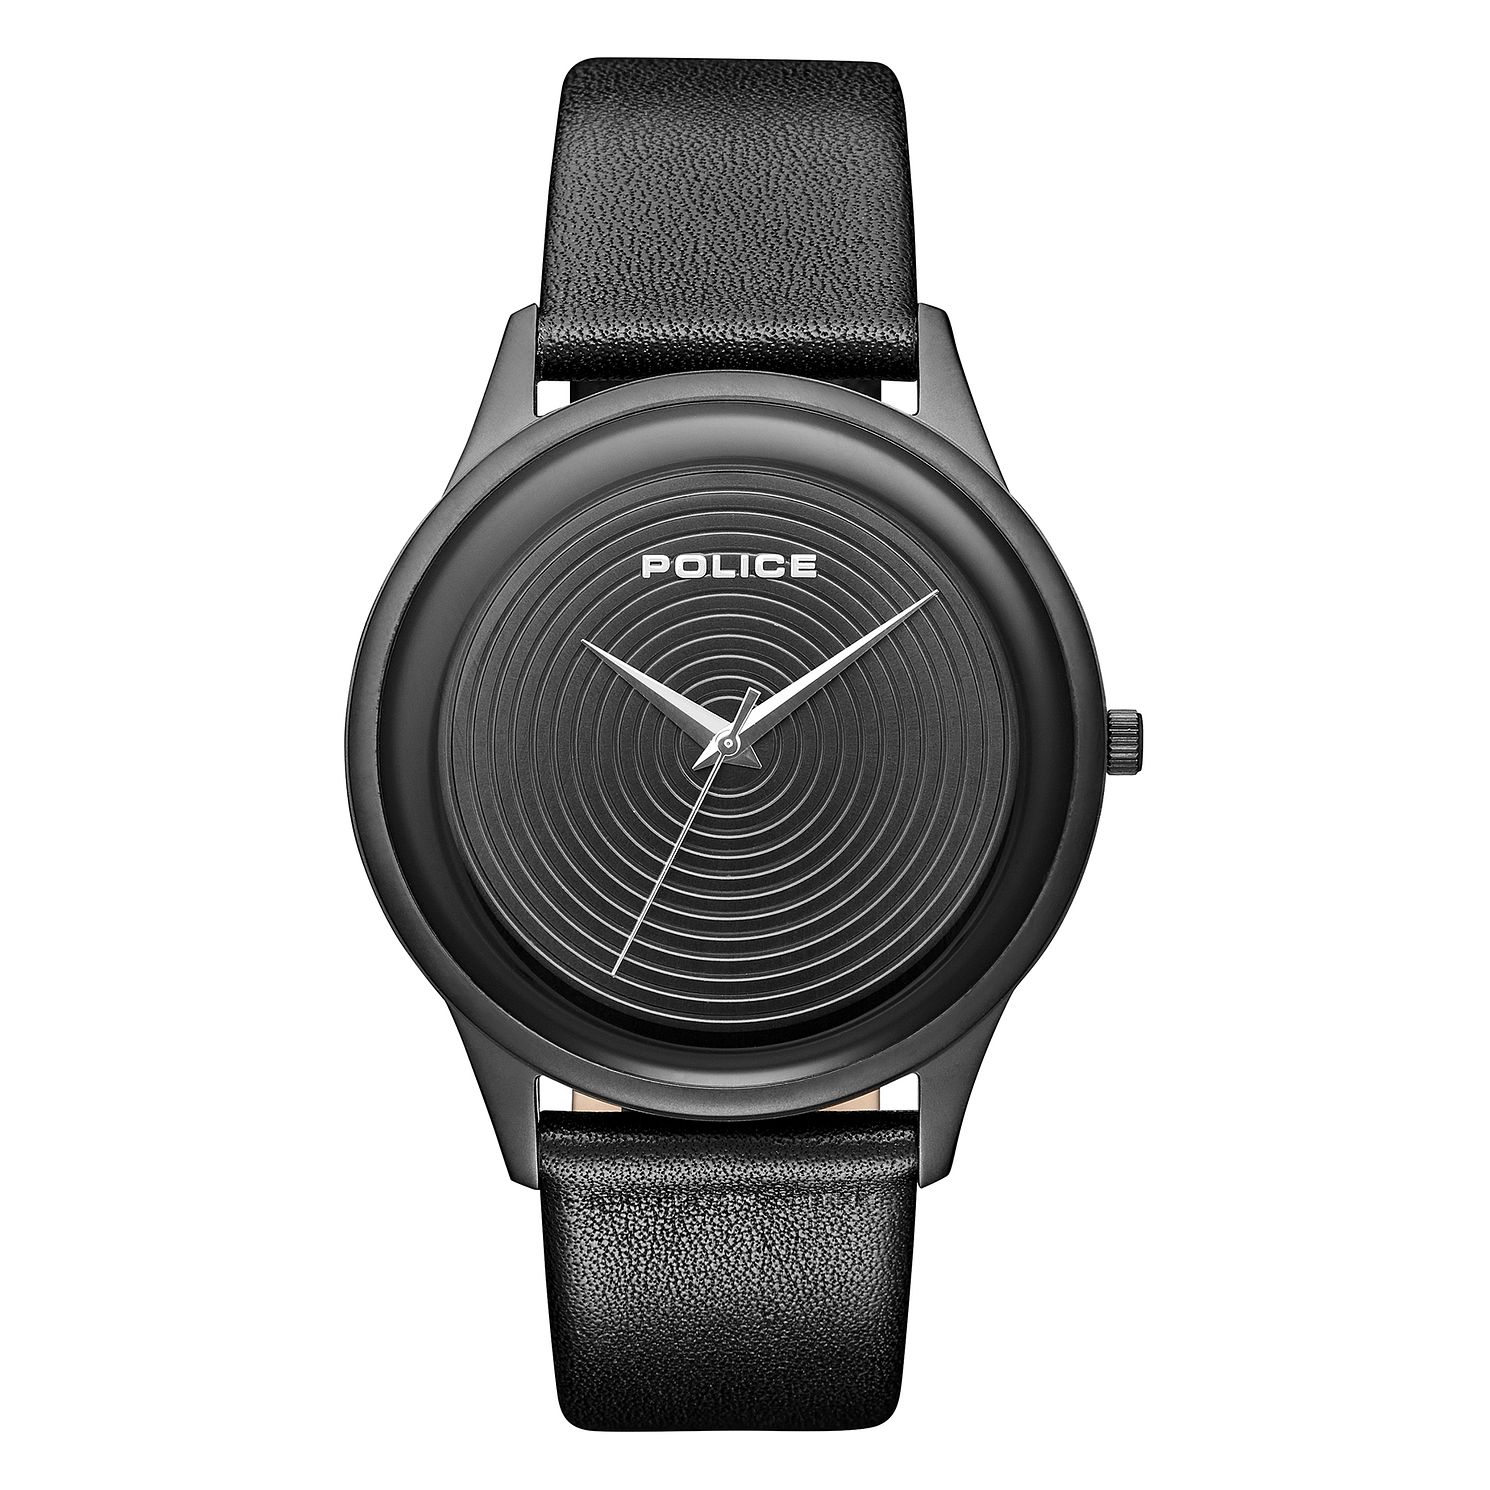 Police Salerno Men's Black Leather Strap Watch - Product number 1084062